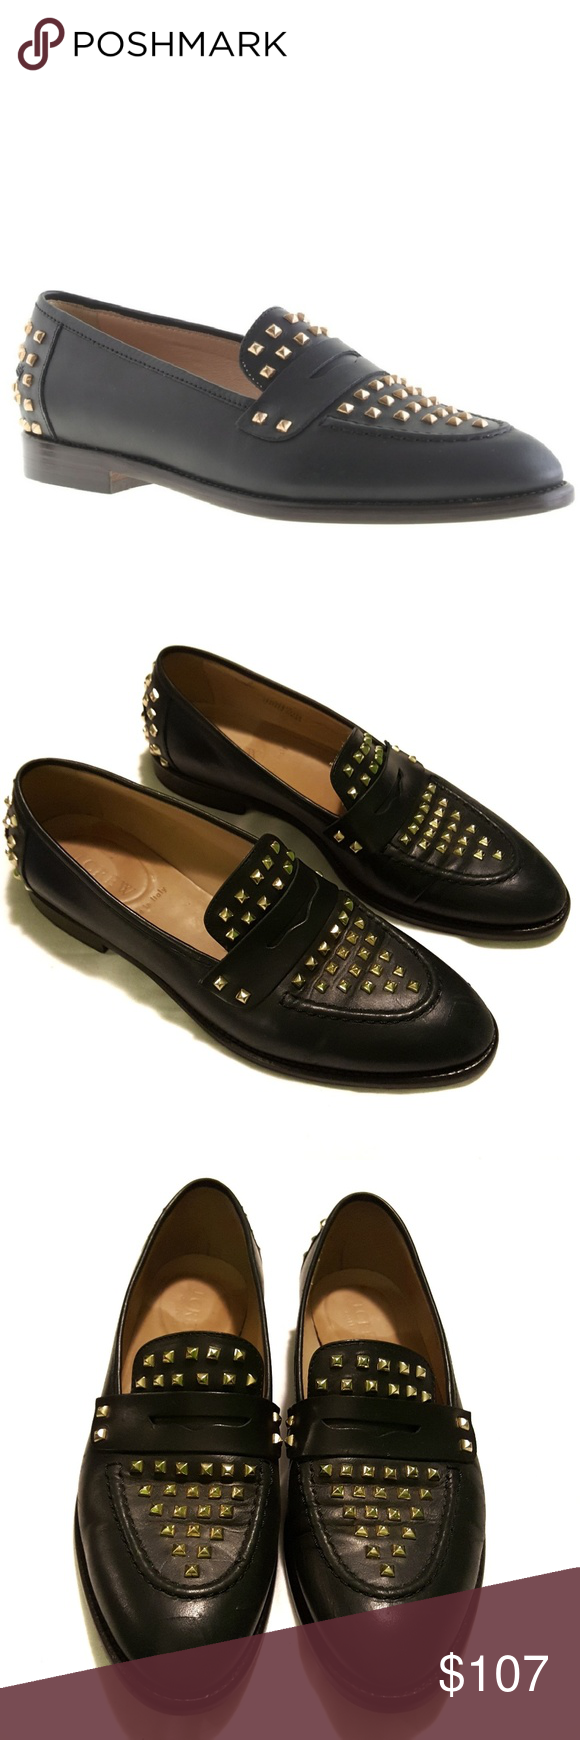 GUC Size 6.5 J. Crew Collection Penny loafers Studs make a ...